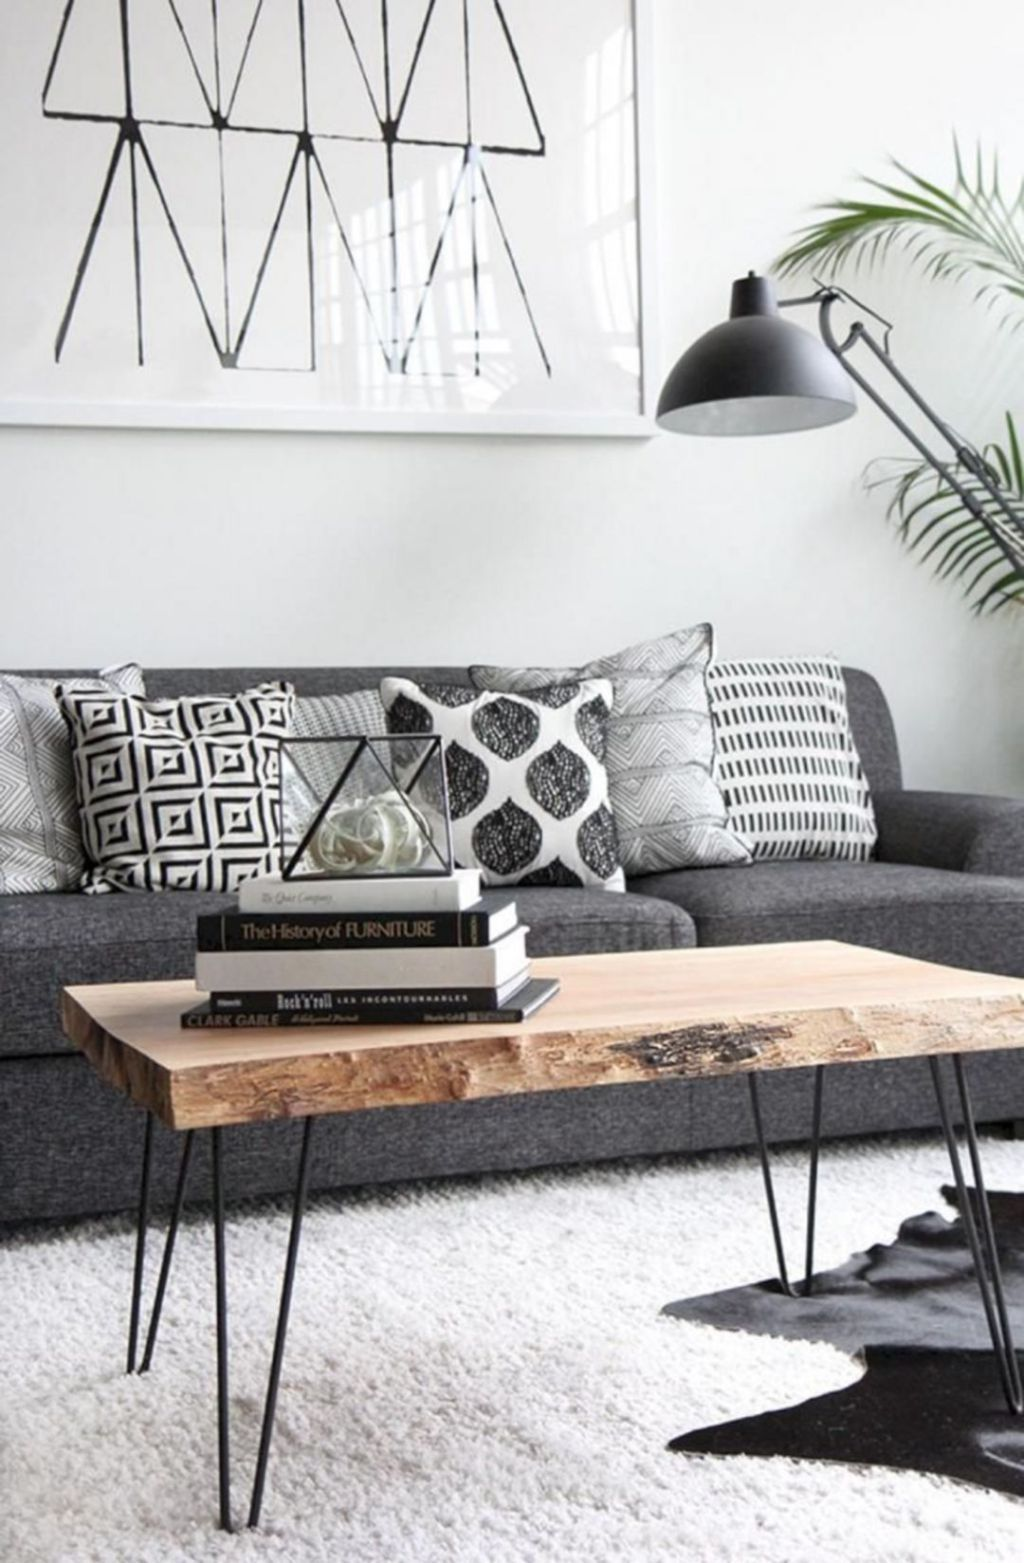 15 Best Decor Ideas For Your Small Living Room Apartment #apartmentlivingrooms